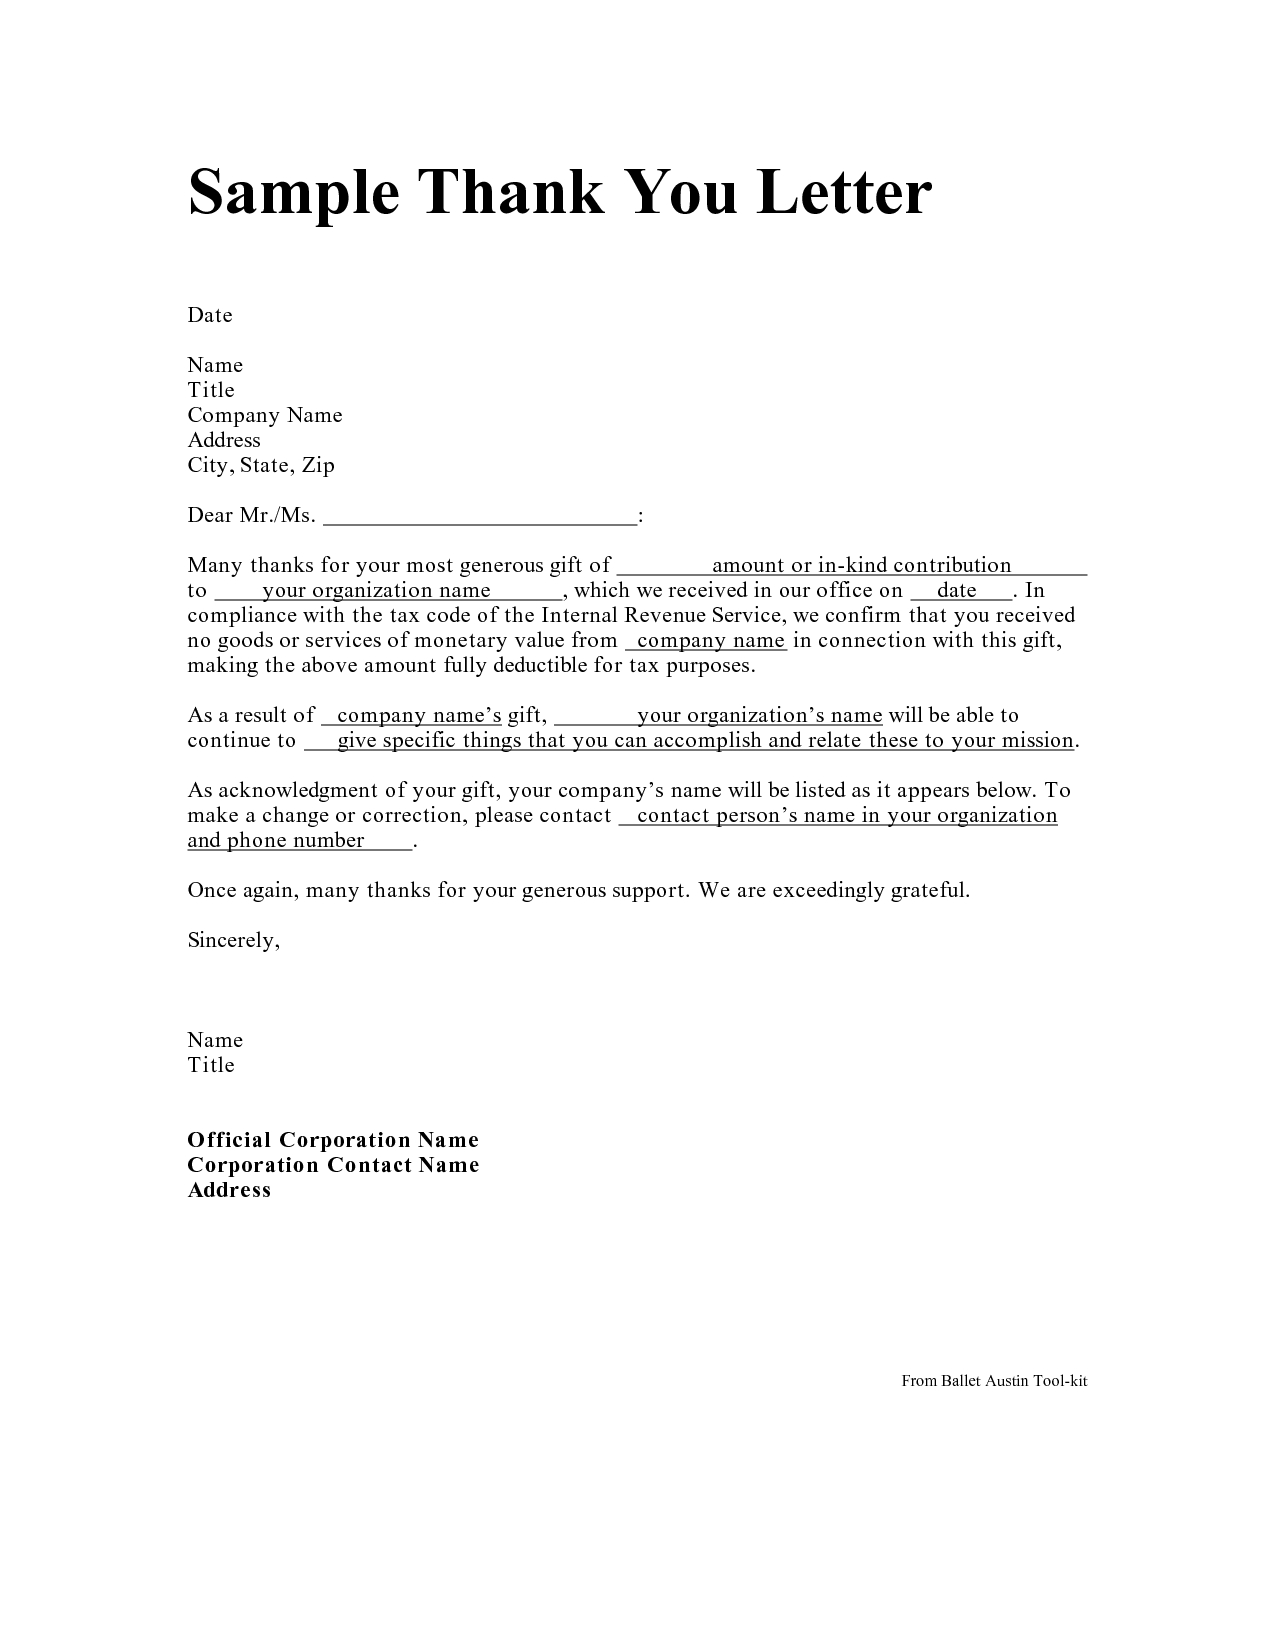 Donation Letter Template for Tax Purposes - Personal Thank You Letter Personal Thank You Letter Samples